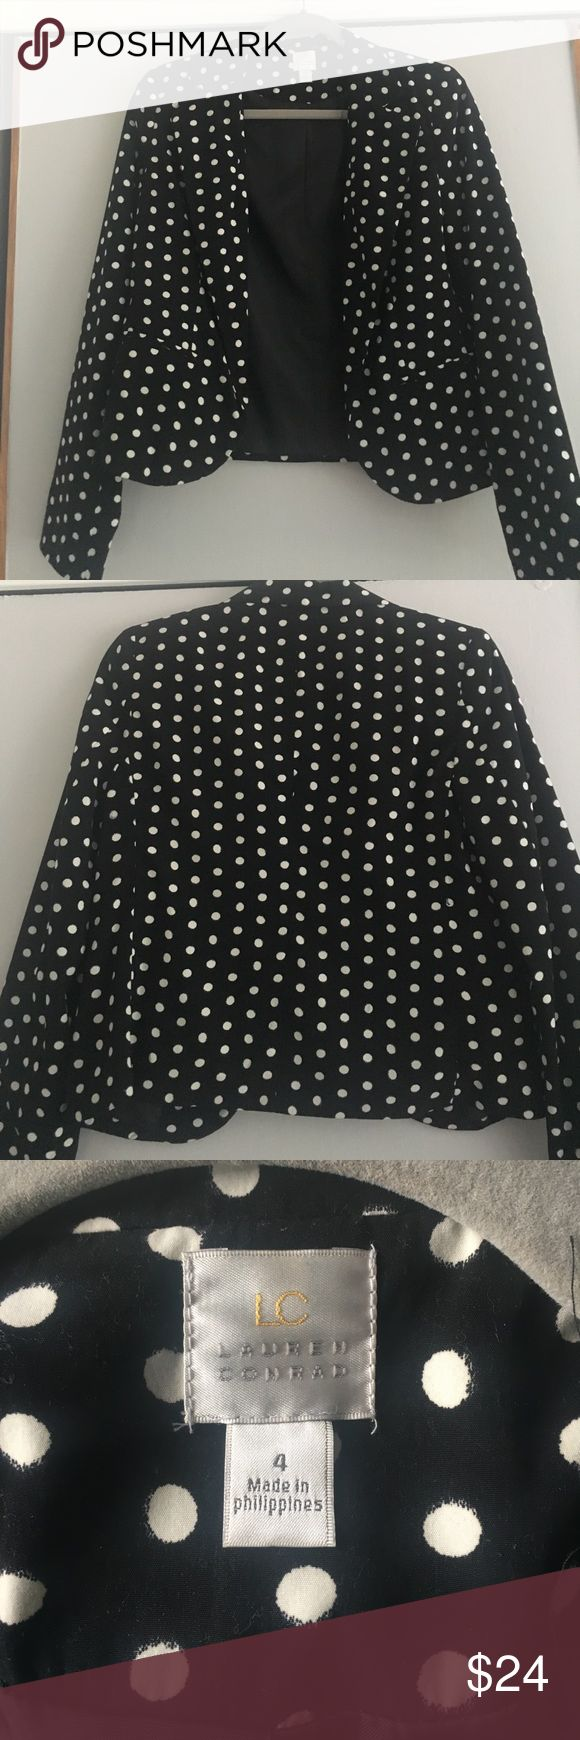 Fun polka dot blazer! Black and white Lauren Conrad polka dot blazer - great over a dress for work or with jeans for a night out! LC Lauren Conrad Jackets & Coats Blazers